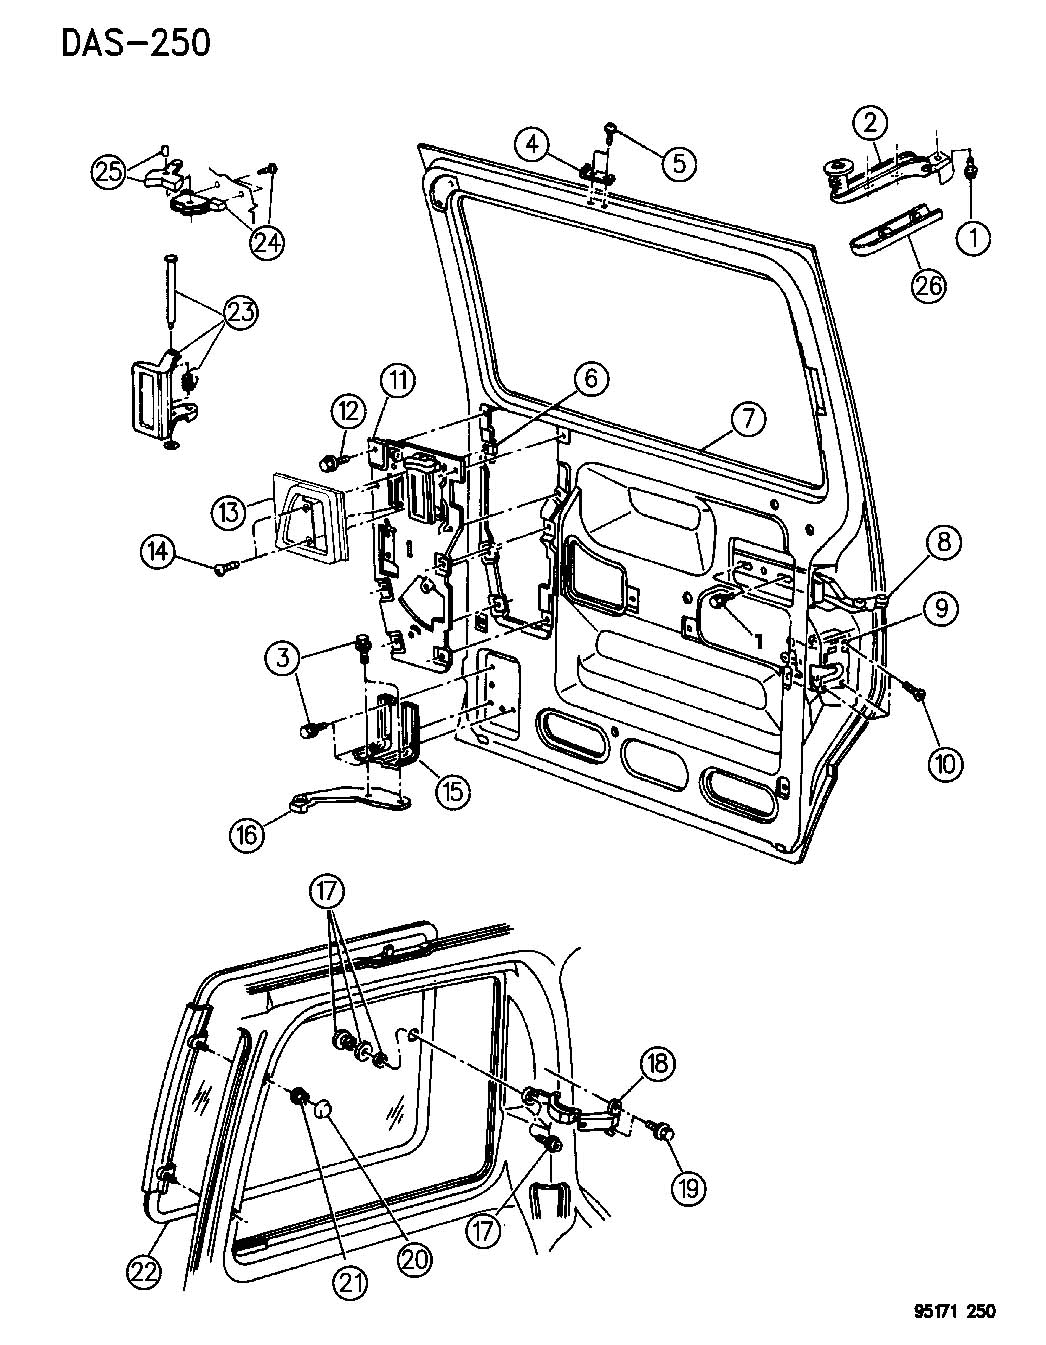 Volkswagen Door Lock Actuator Wiring Diagram Diagrams Aftermarket 2005 01 Blazer Drivers